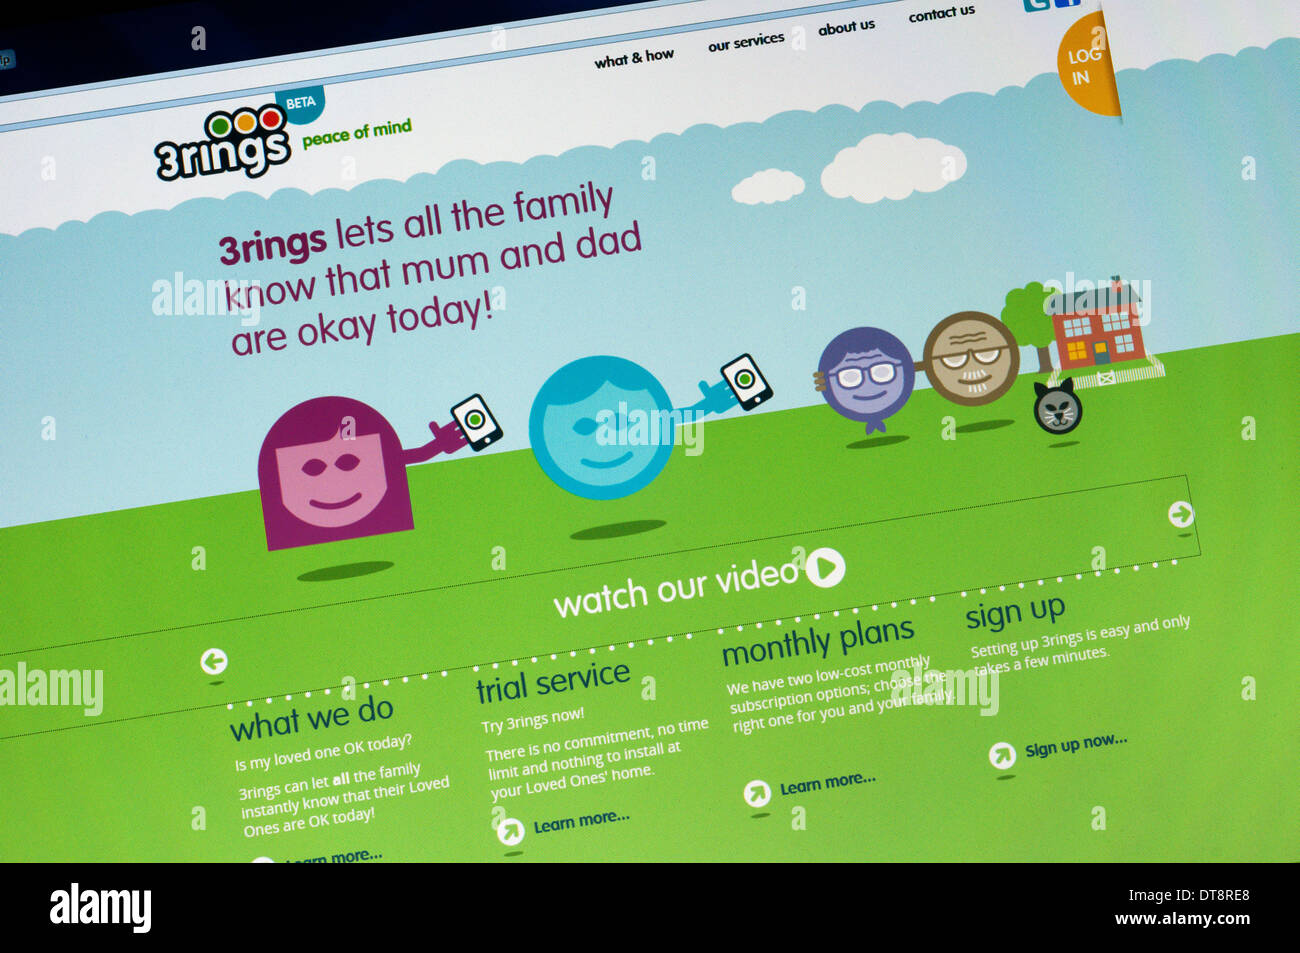 The homepage of the 3rings web site. - Stock Image